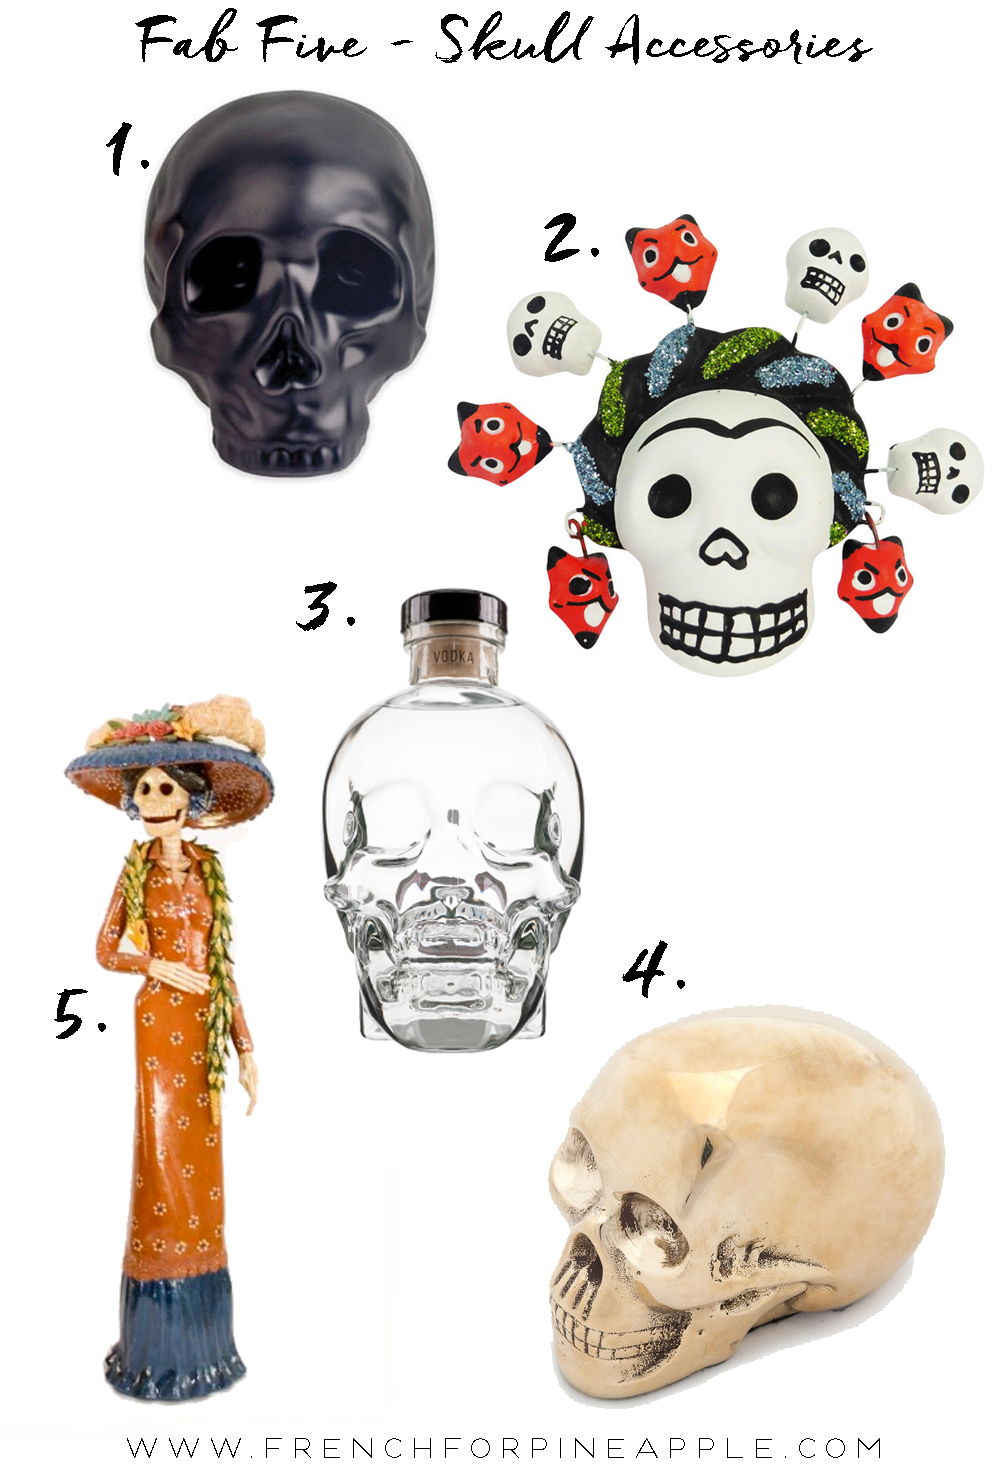 French For Pineapple Blog - Fab Five Skull Accessories